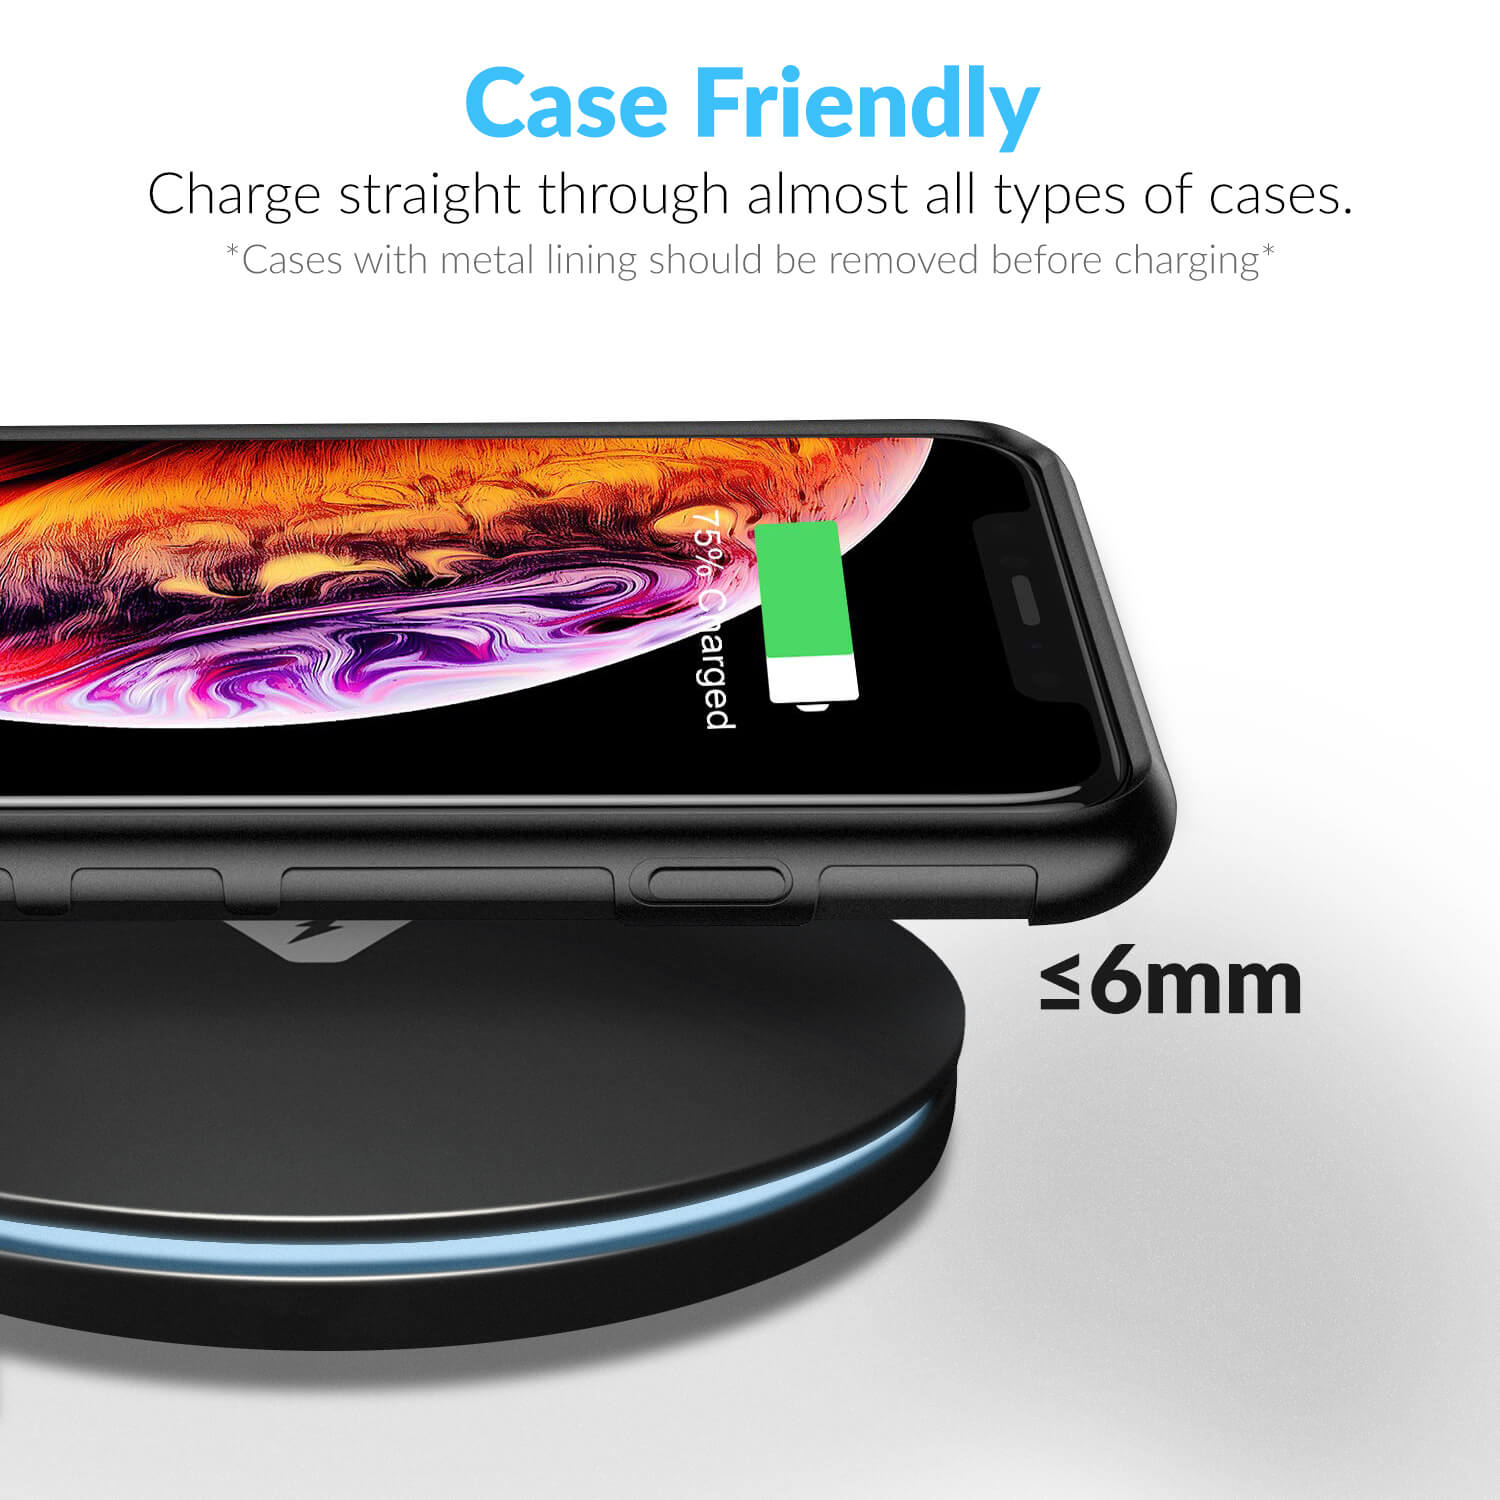 Wireless Charger – QI Certified Fast Charge for iPhones and Samsung phones